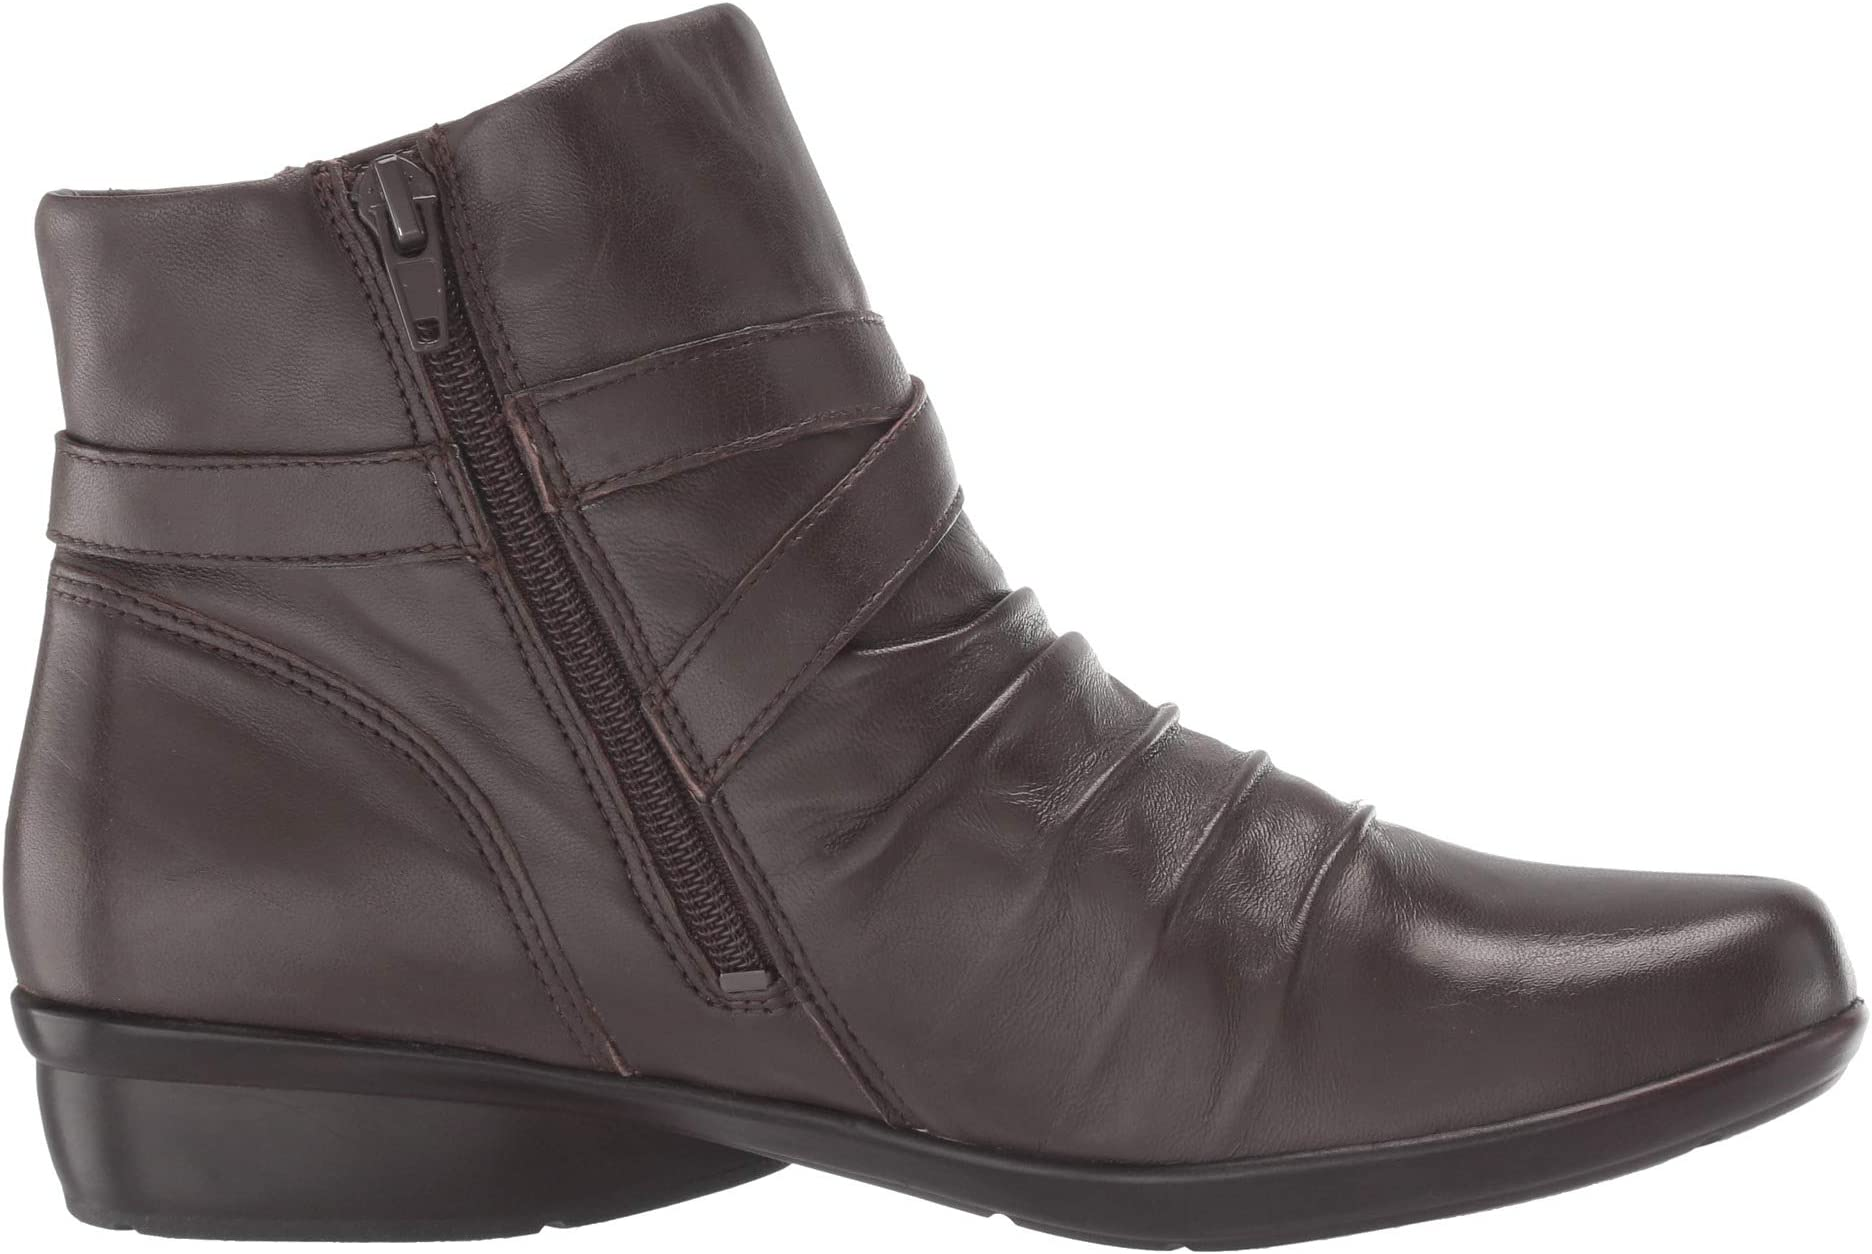 Naturalizer Canyon | Women's shoes | 2020 Newest